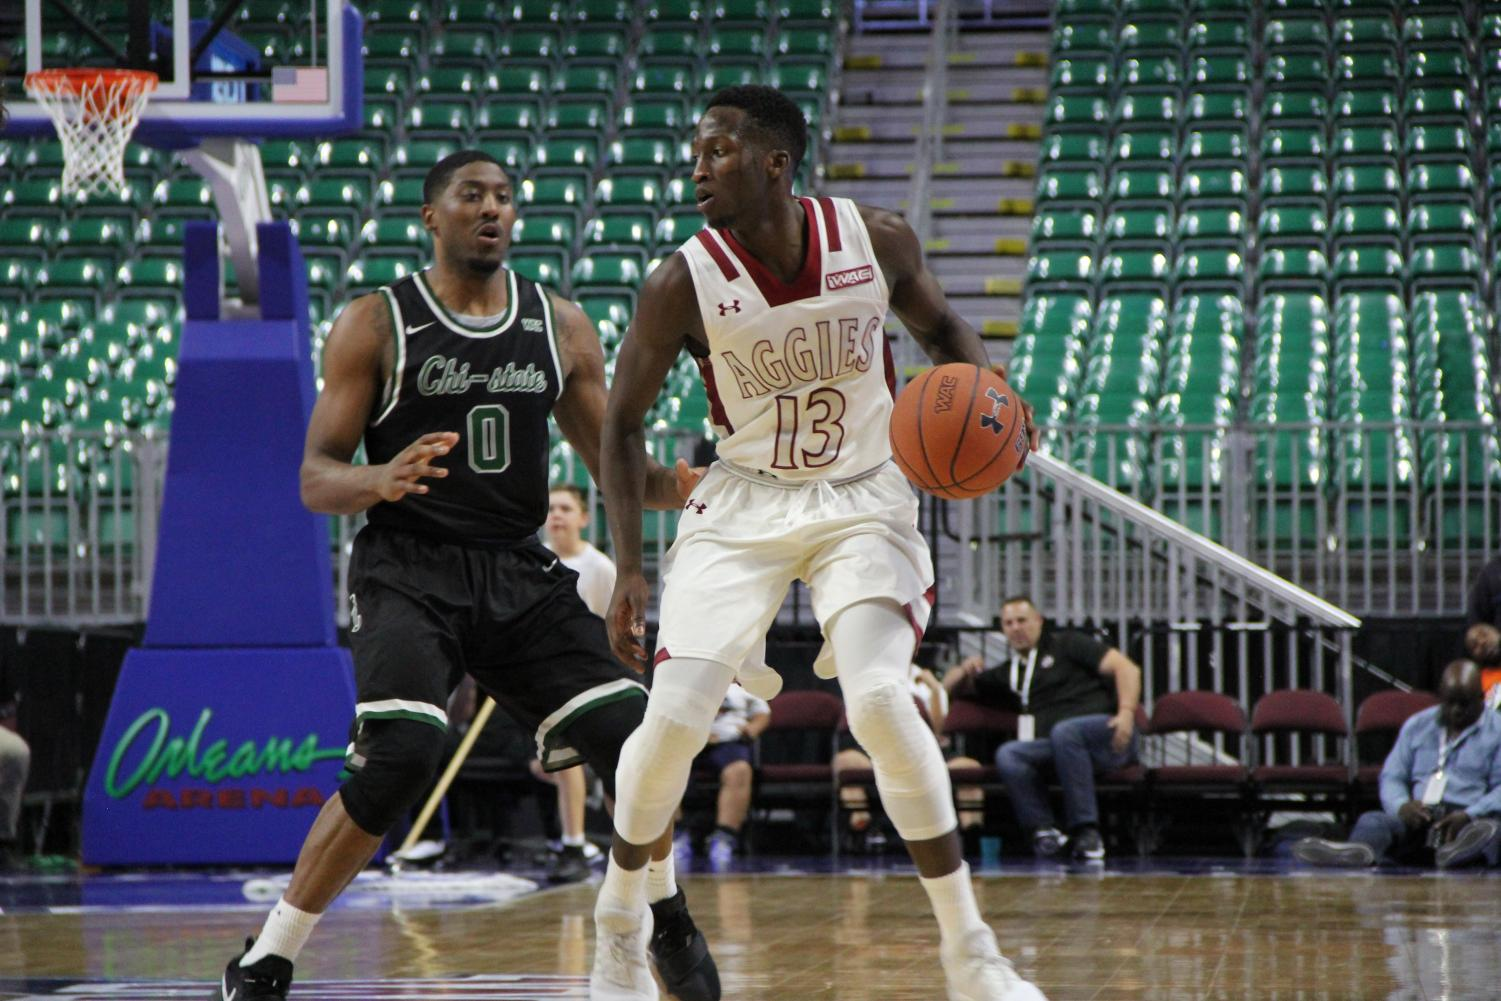 Sidy N'Dir moves the ball up the court Thursday night inside the Orleans Arena in Las Vegas, Nevada. NMSU will move on to the semifinals in the WAC tournament.